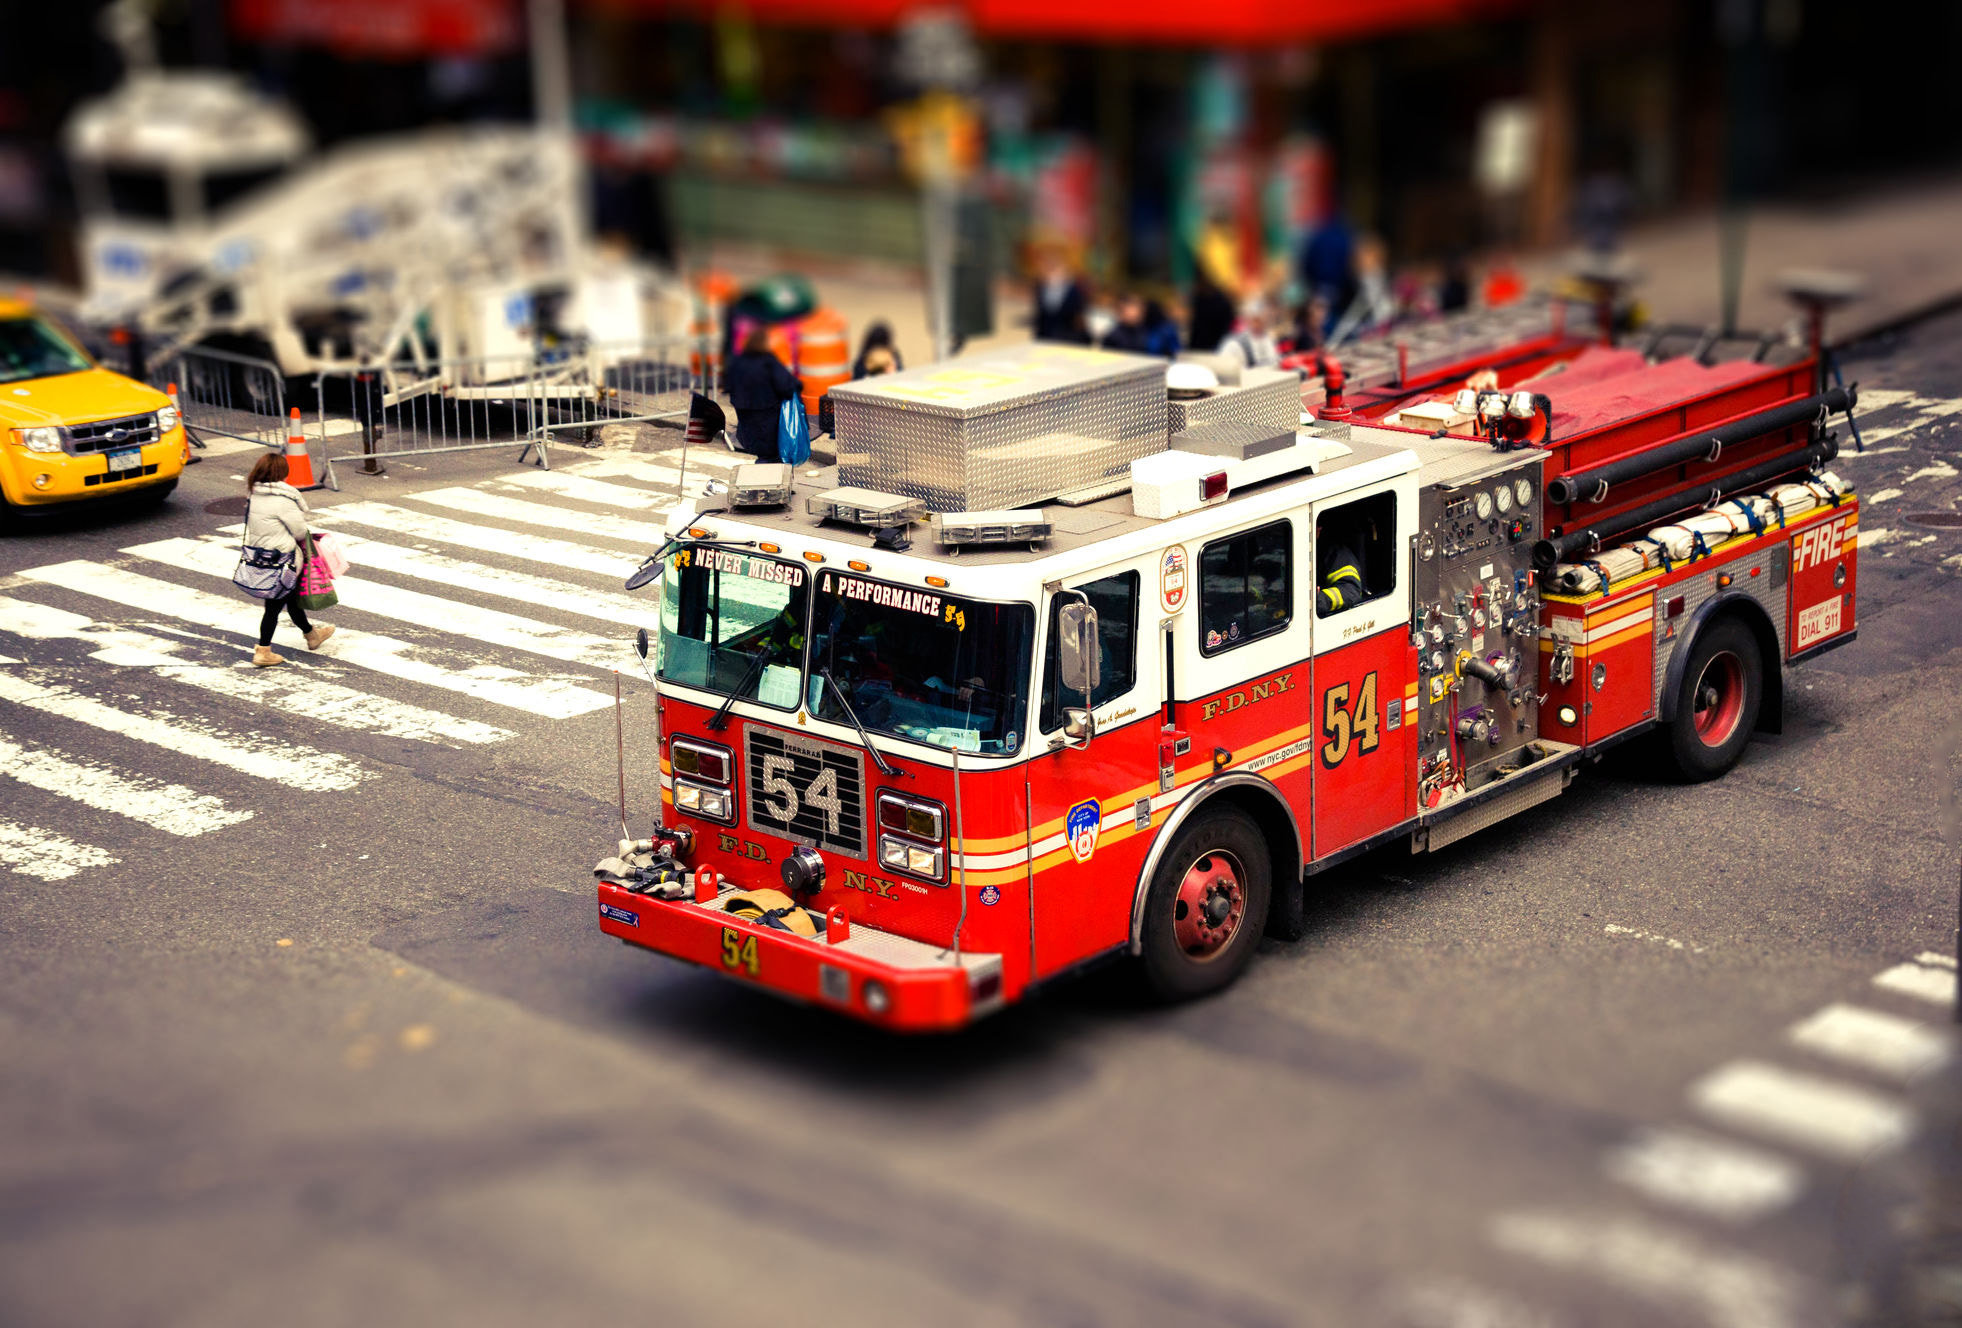 Photograph NEW YORK CITY -Times Square, FDNY. Tilt shift effect. by Sabrina Marchi on 500px